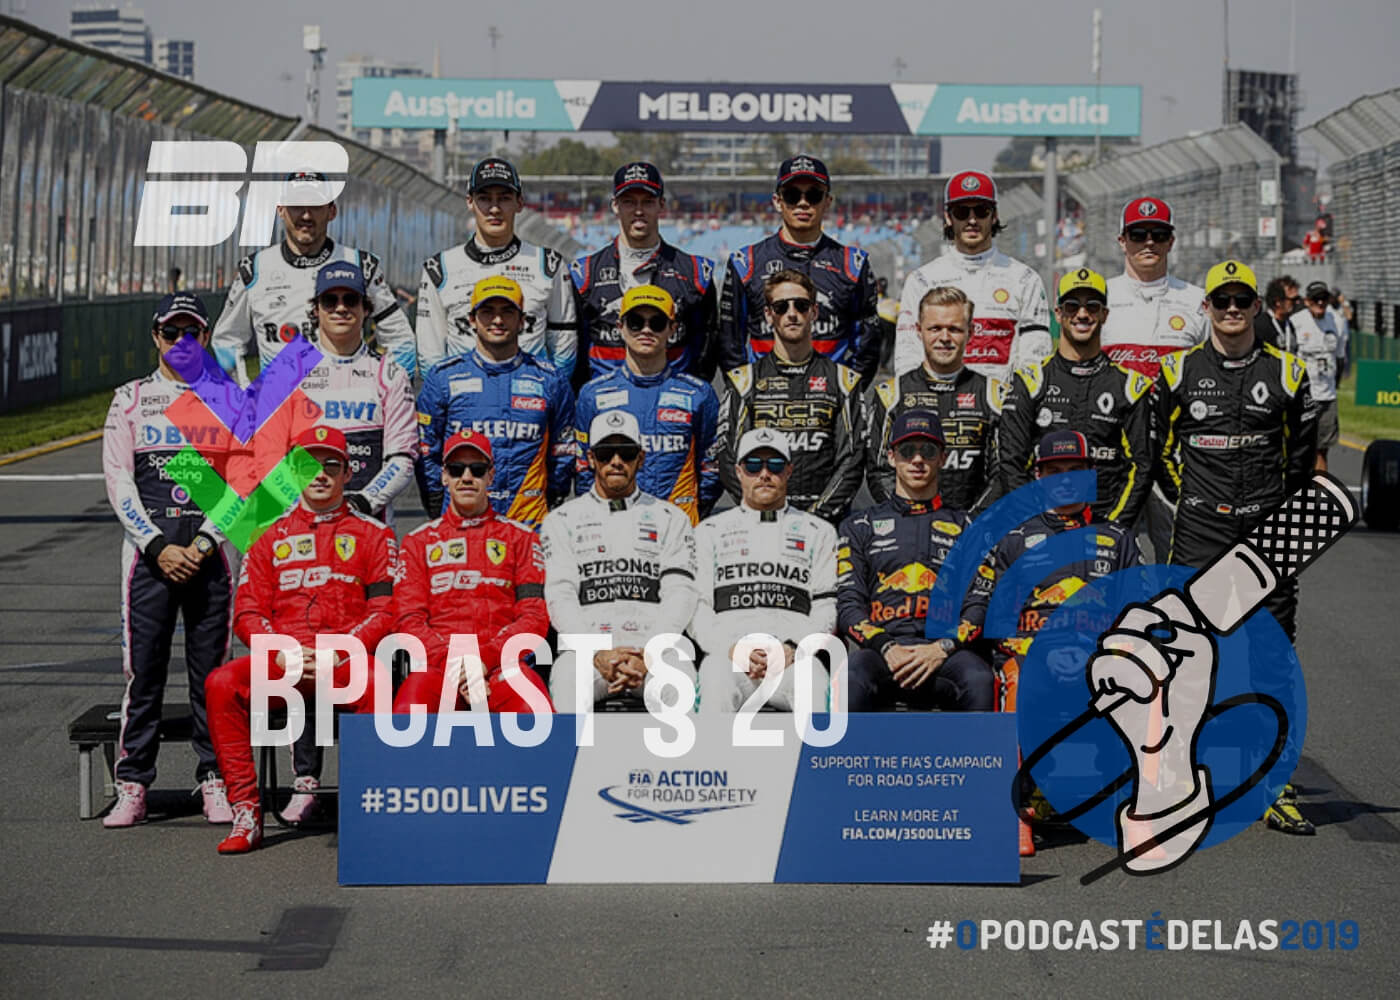 Foto de BPCast § 20 | Review do GP da Austrália de 2019 – #OPODCASTÉDELAS